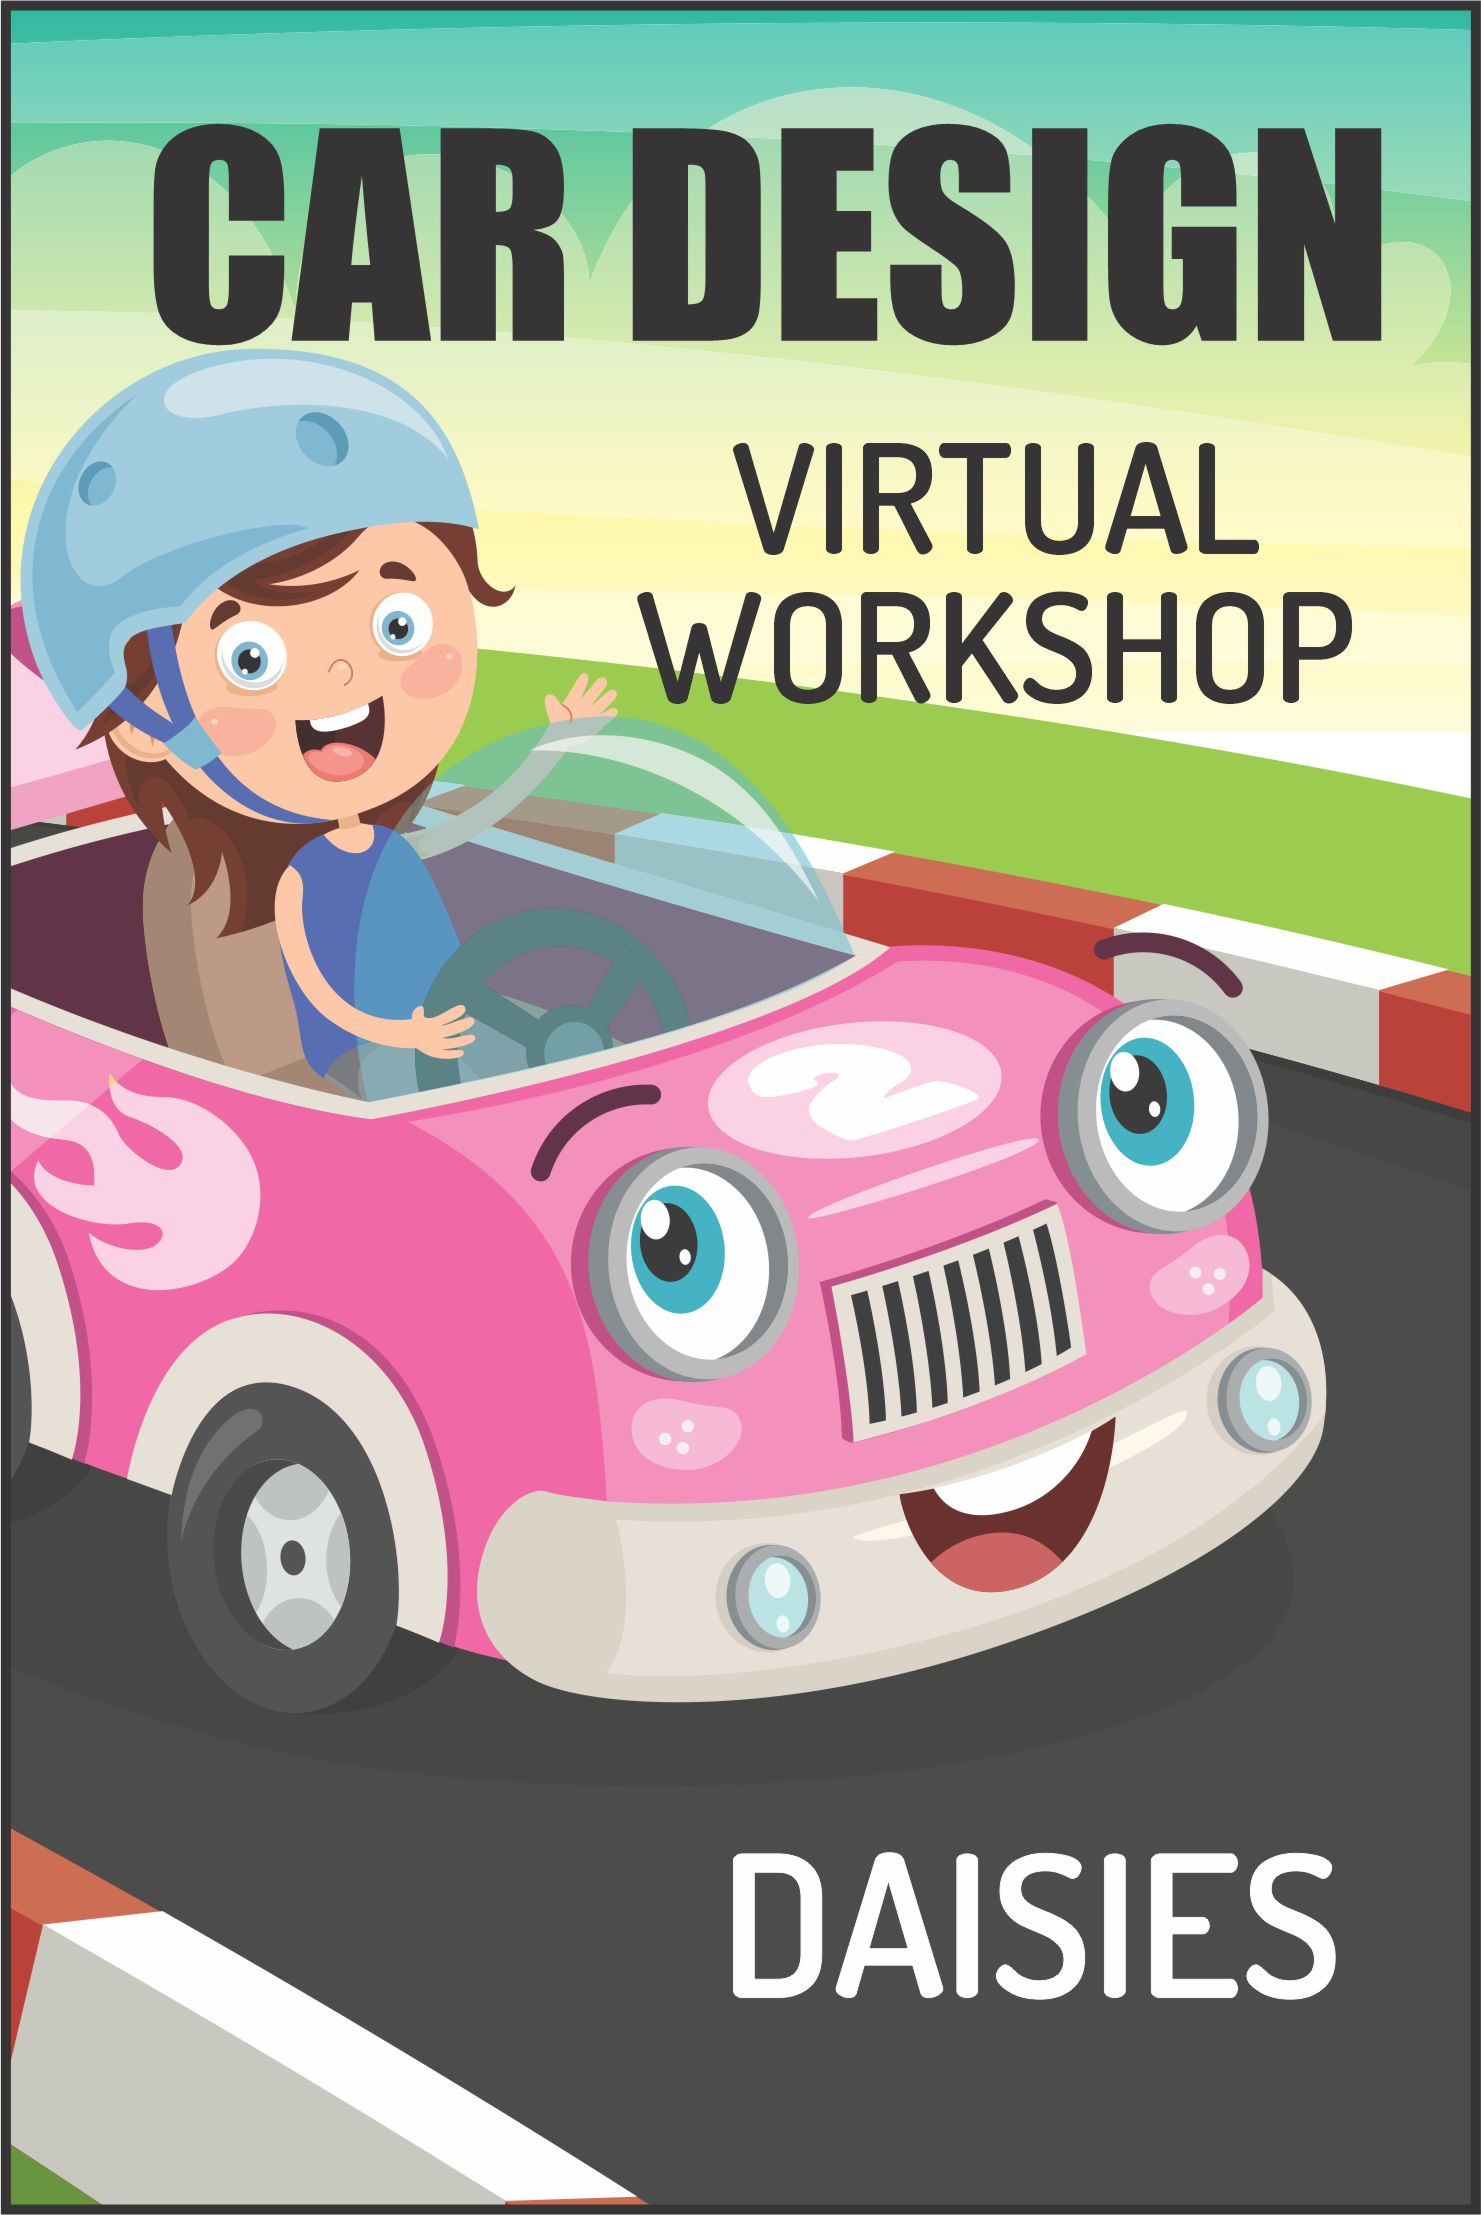 Rev up your engines and join us for our Daisy Car Design Badge Workshop! #makingfriends #cardesign #virtualworkshop #onlineclass #girlscouts #daisy #daisies #gsdaisy #daisycardesign #funpatch #girlscoutpatches via @gsleader411